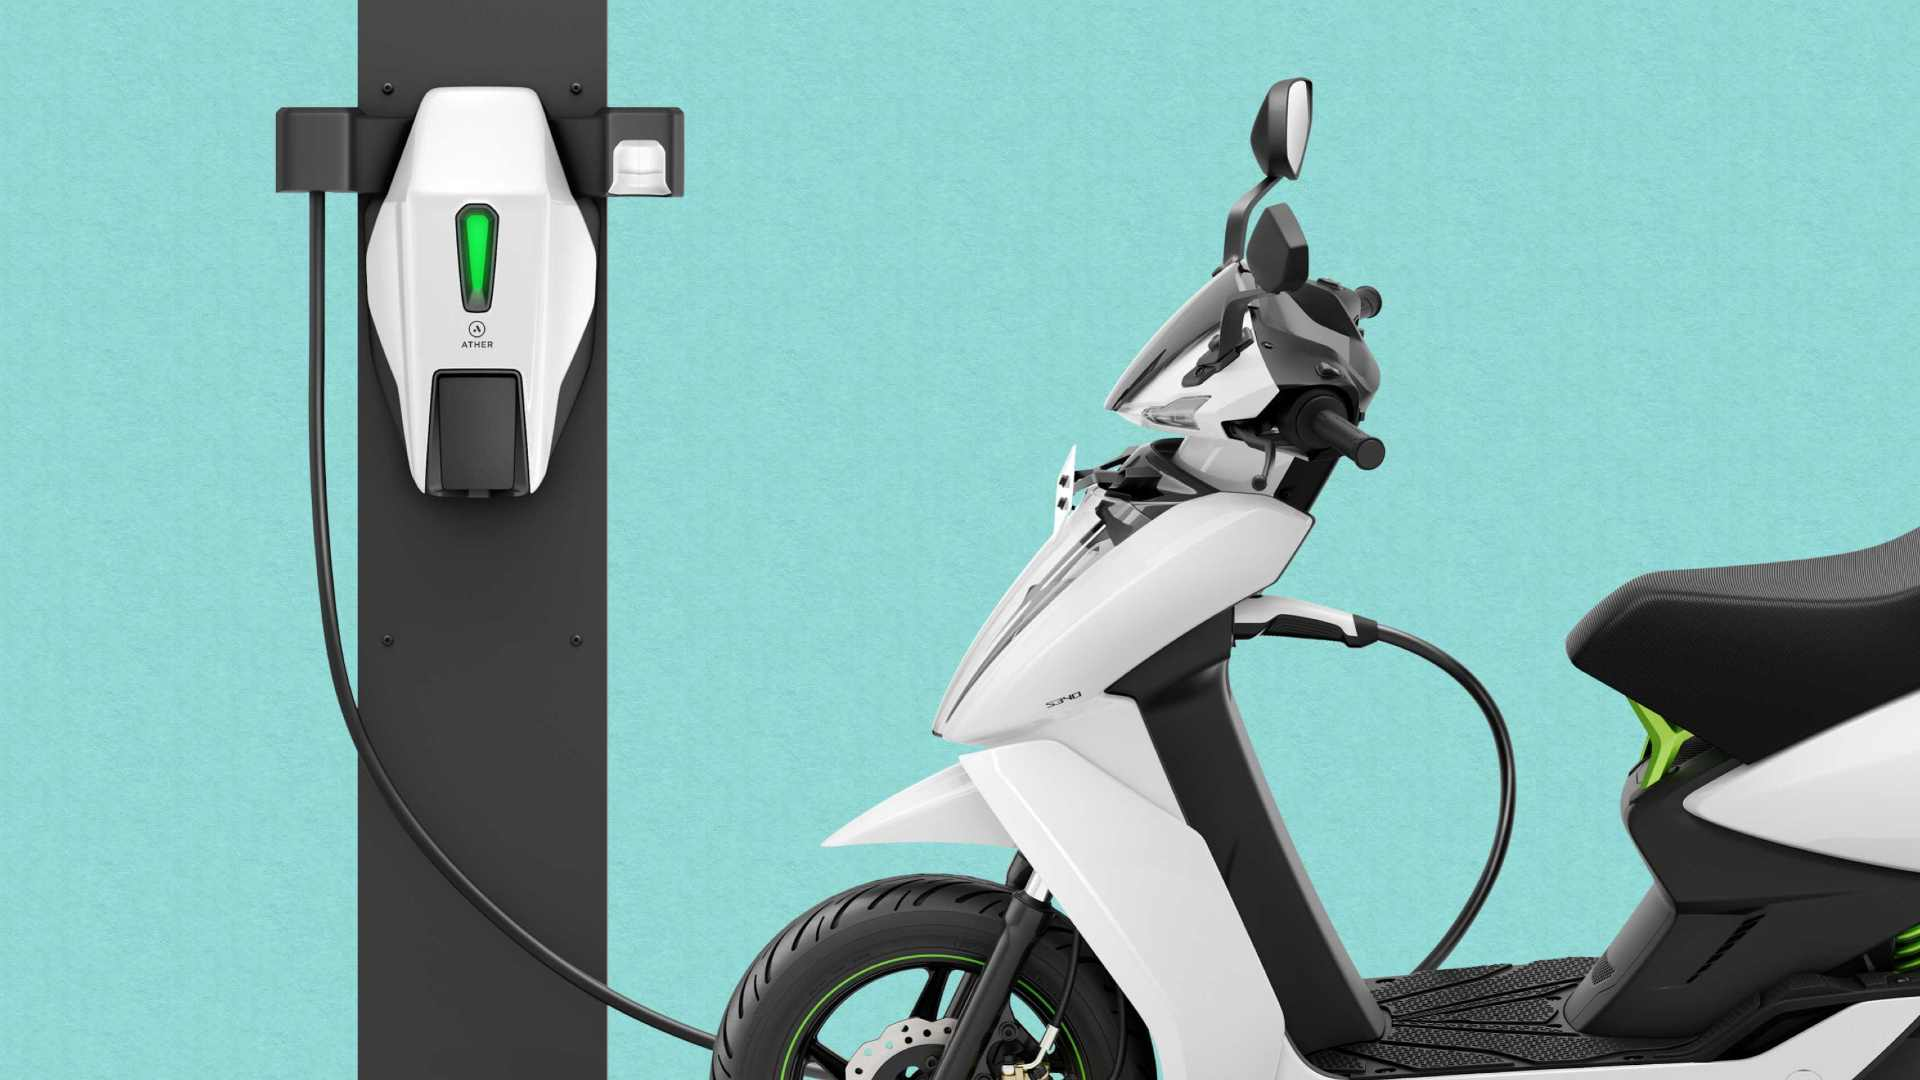 Why Ather Energy thinks it will share its fast-charging technology to increase sales of electric two-wheelers in India-Technology News, Firstpost